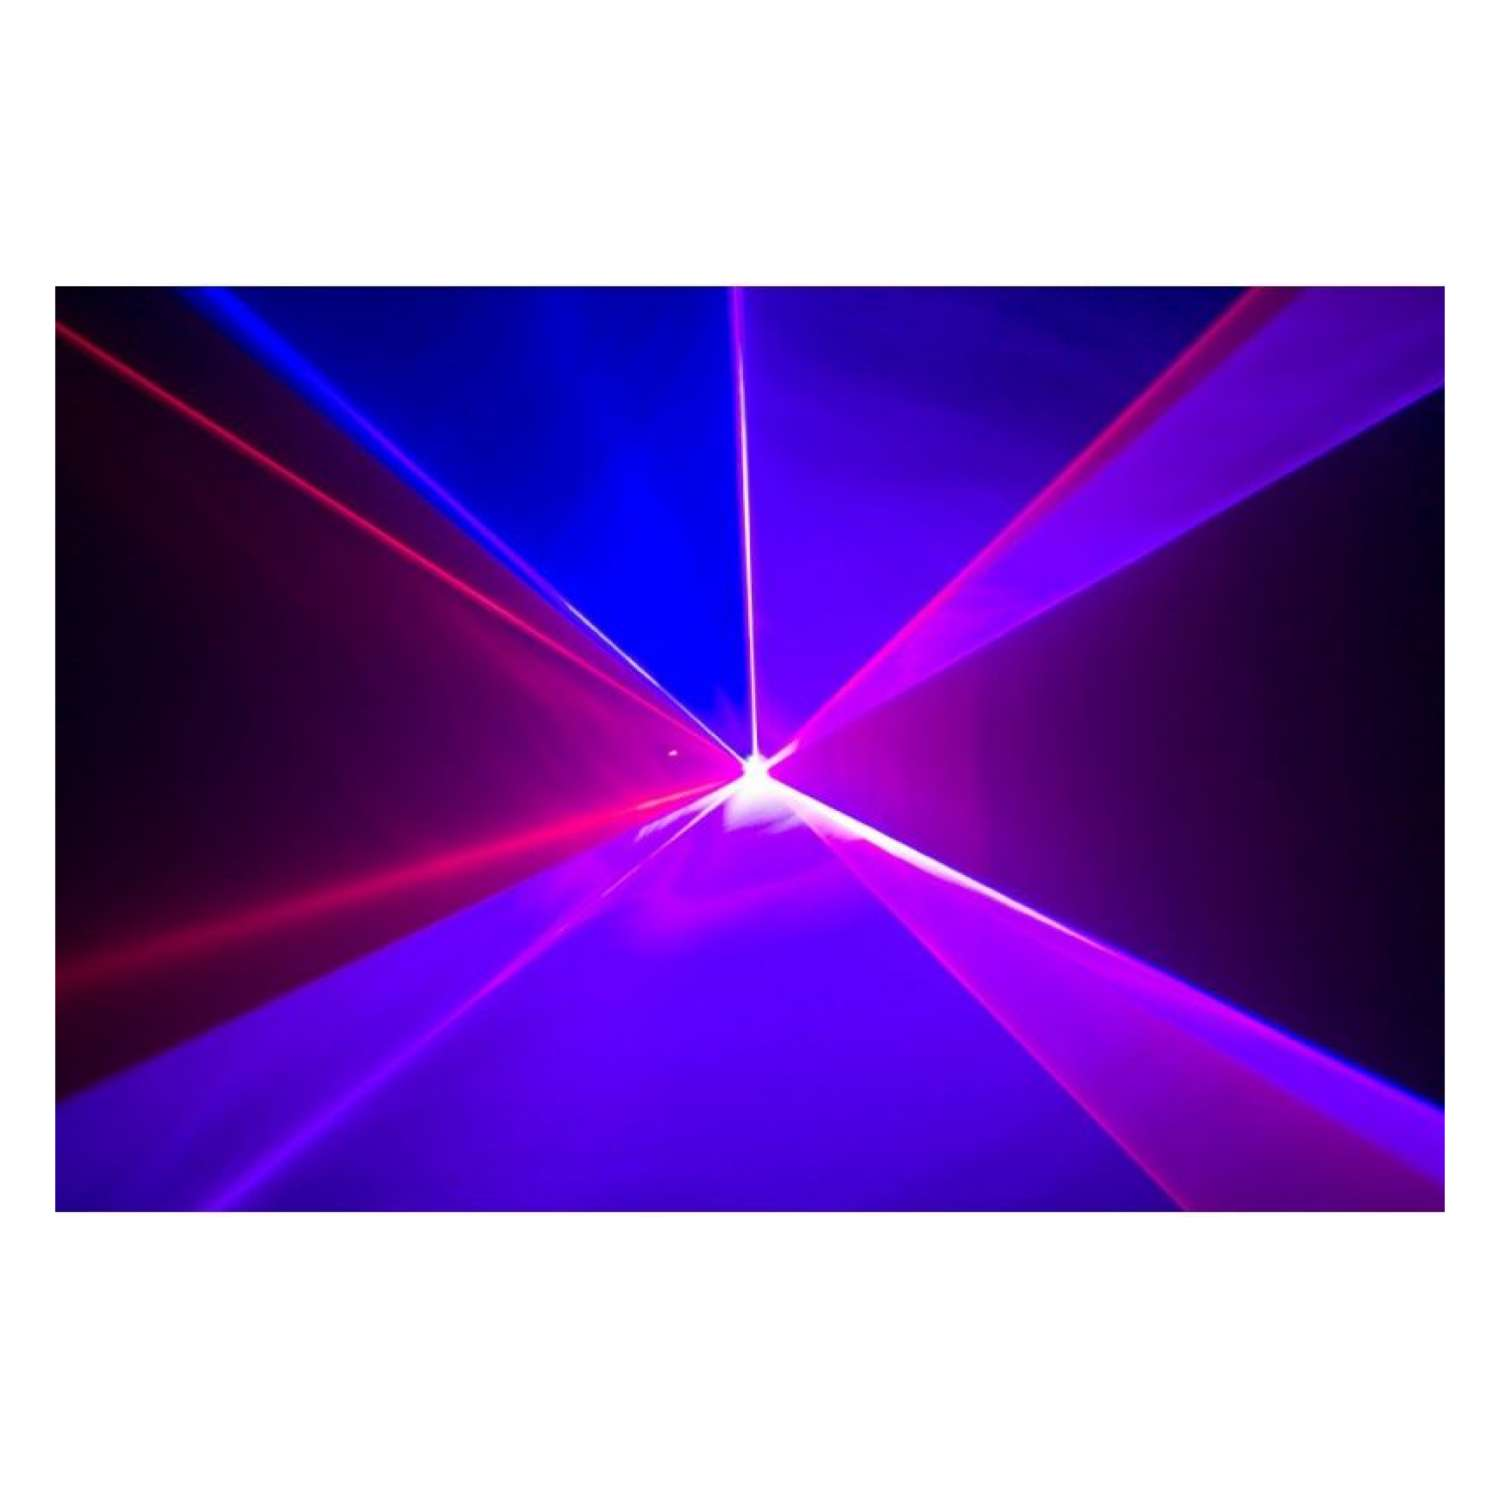 CR Laser Double Power RBP 650mW Pink Multi Color Laser, Grating Effect 2